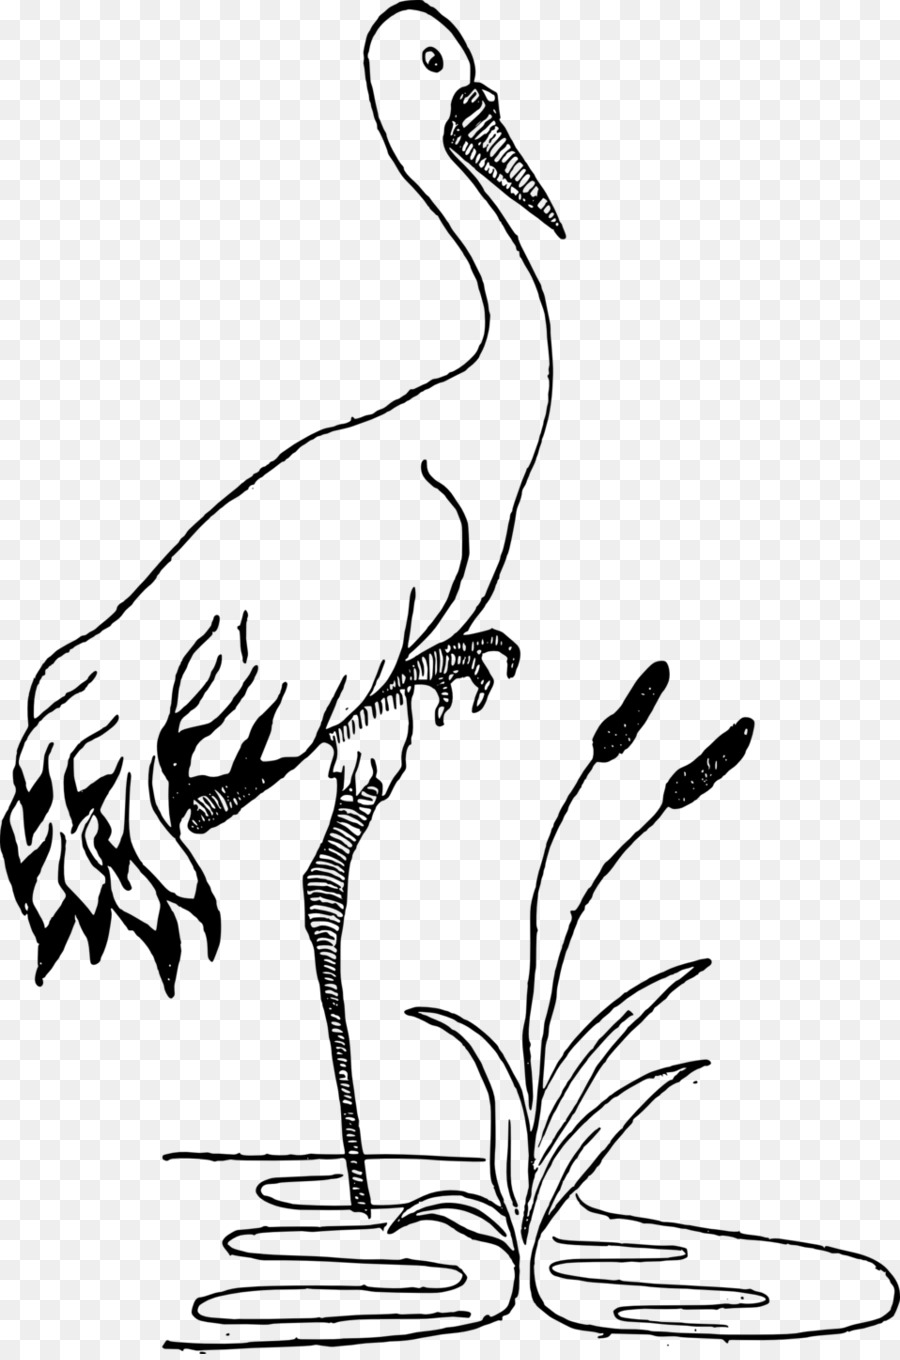 Animals clipart crane. Black and white drawing